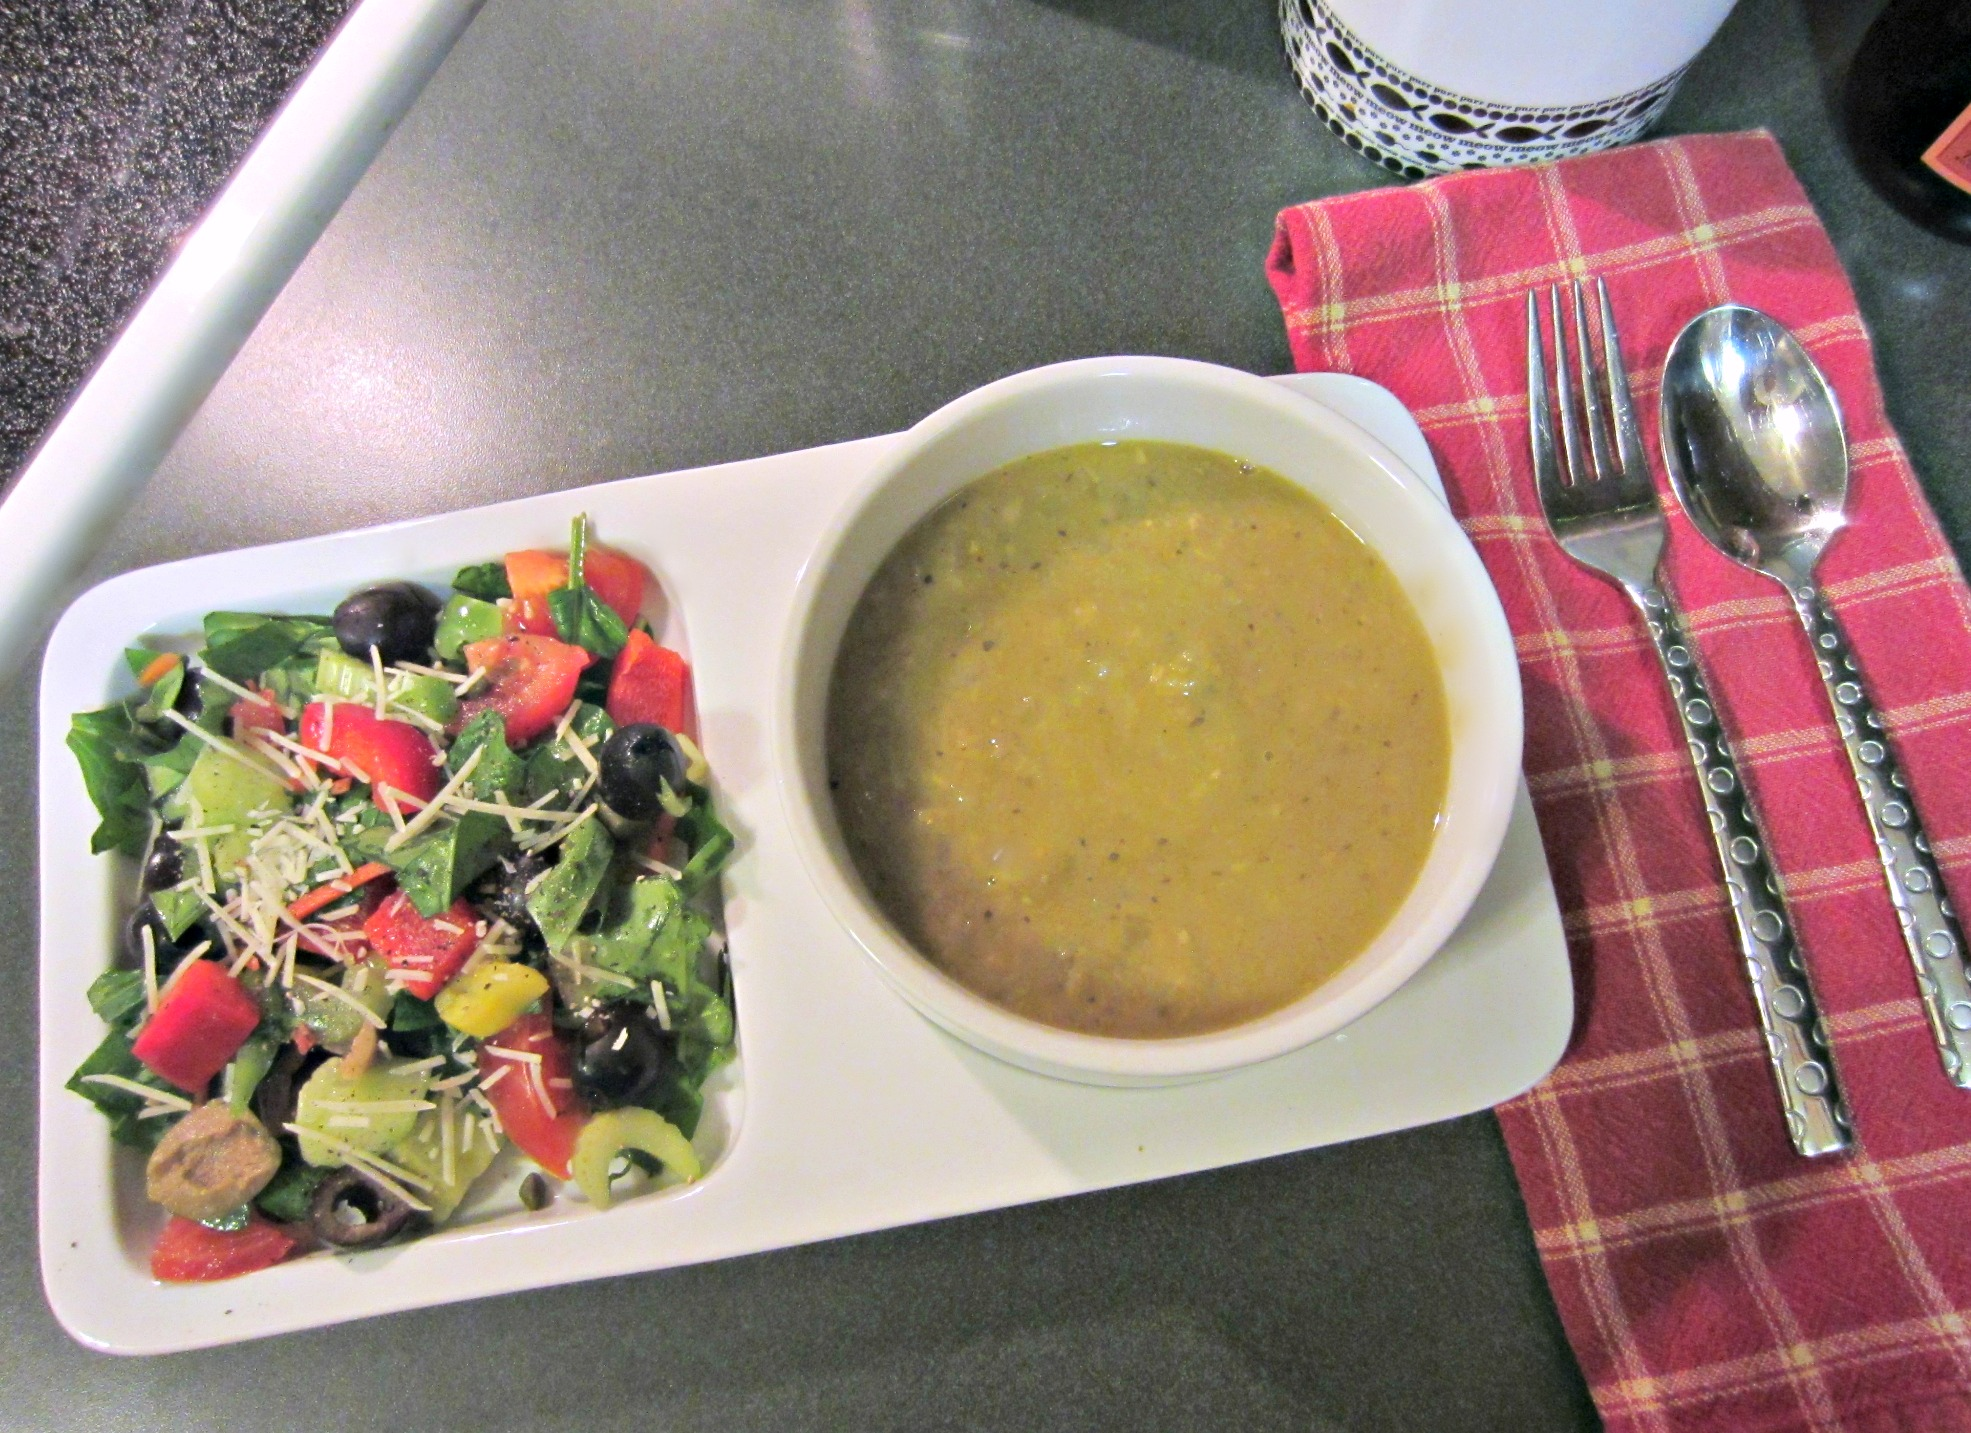 veggie salad and split pea soup